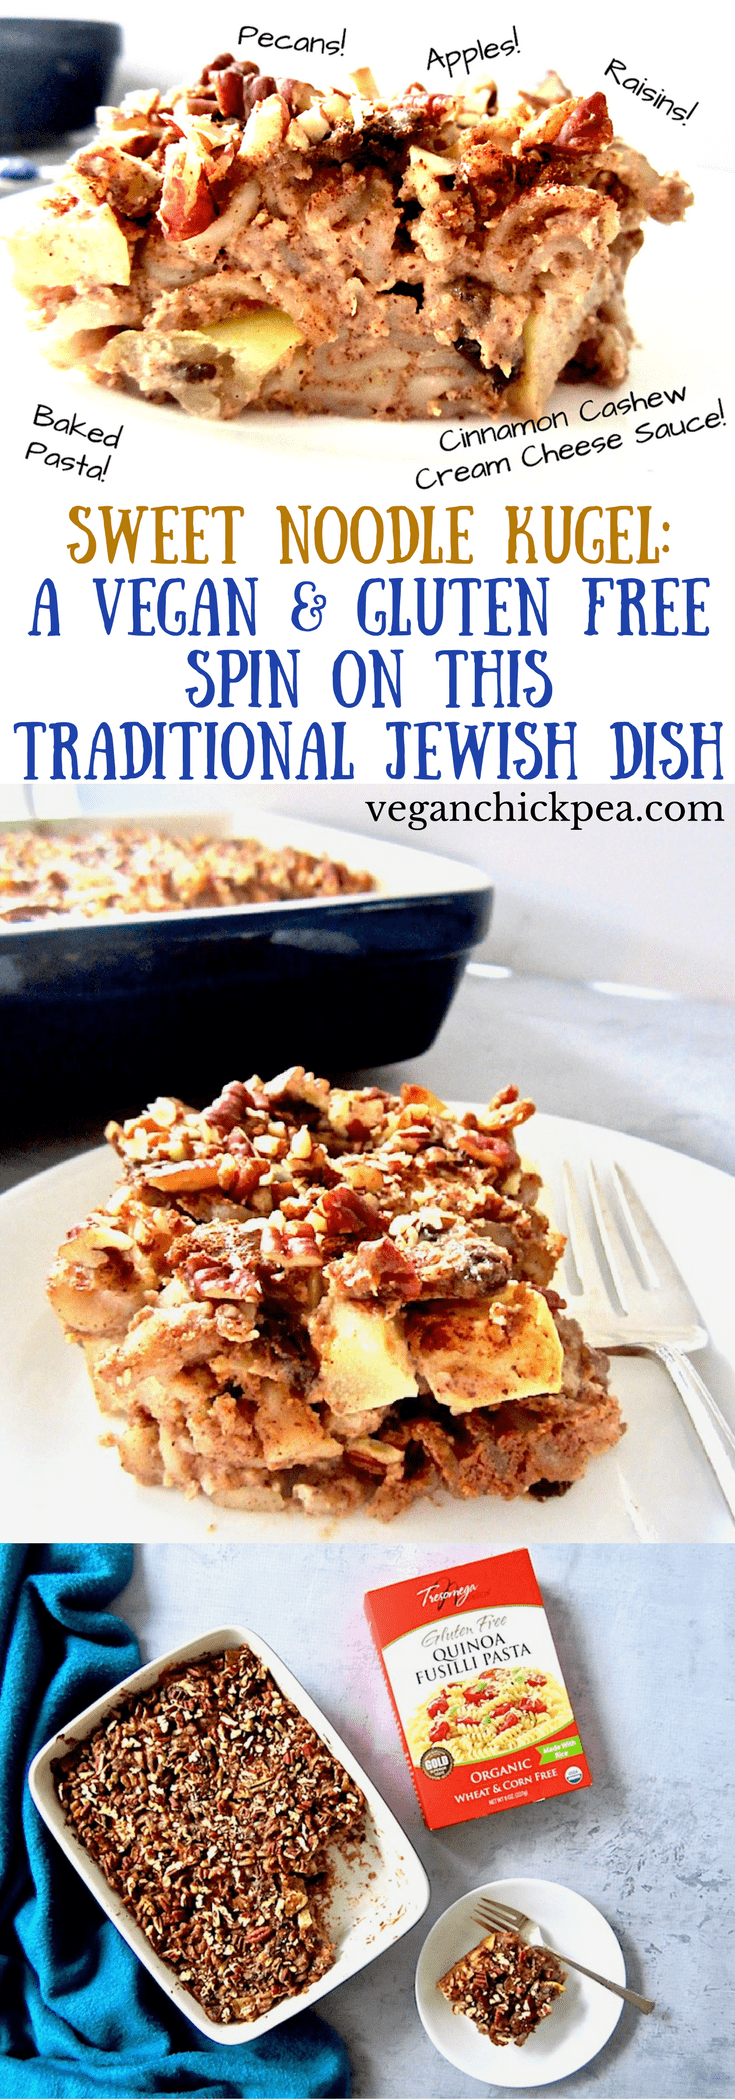 Sweet Noodle Kugel A Vegan Gluten Free Spin On This Traditional Recipe Jewish Recipes Kugel Jewish Holiday Recipes